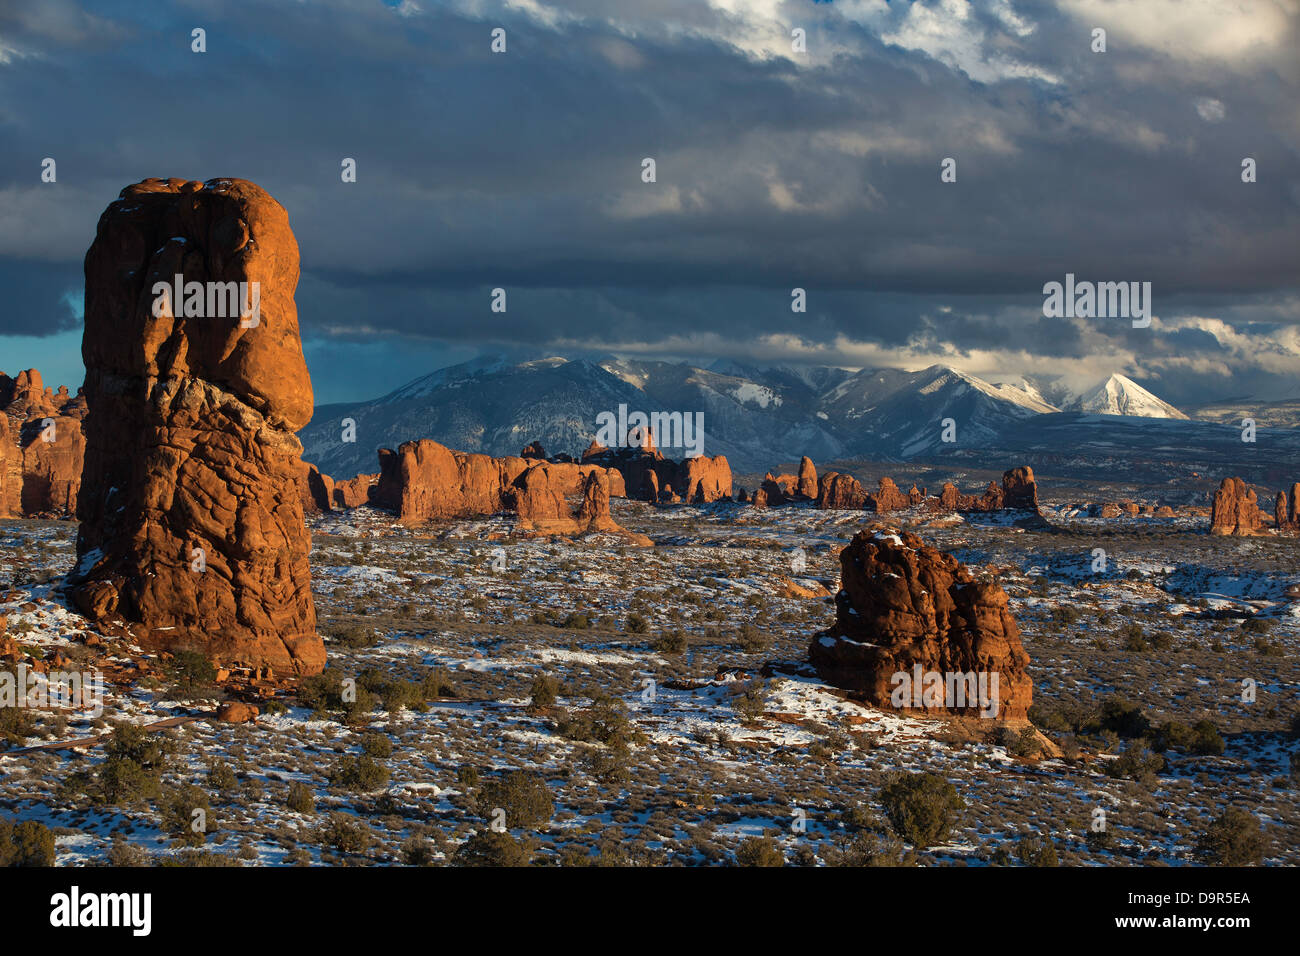 Windows Section with the La Sal Mountains beyond, Arches National Park, Utah, USA - Stock Image